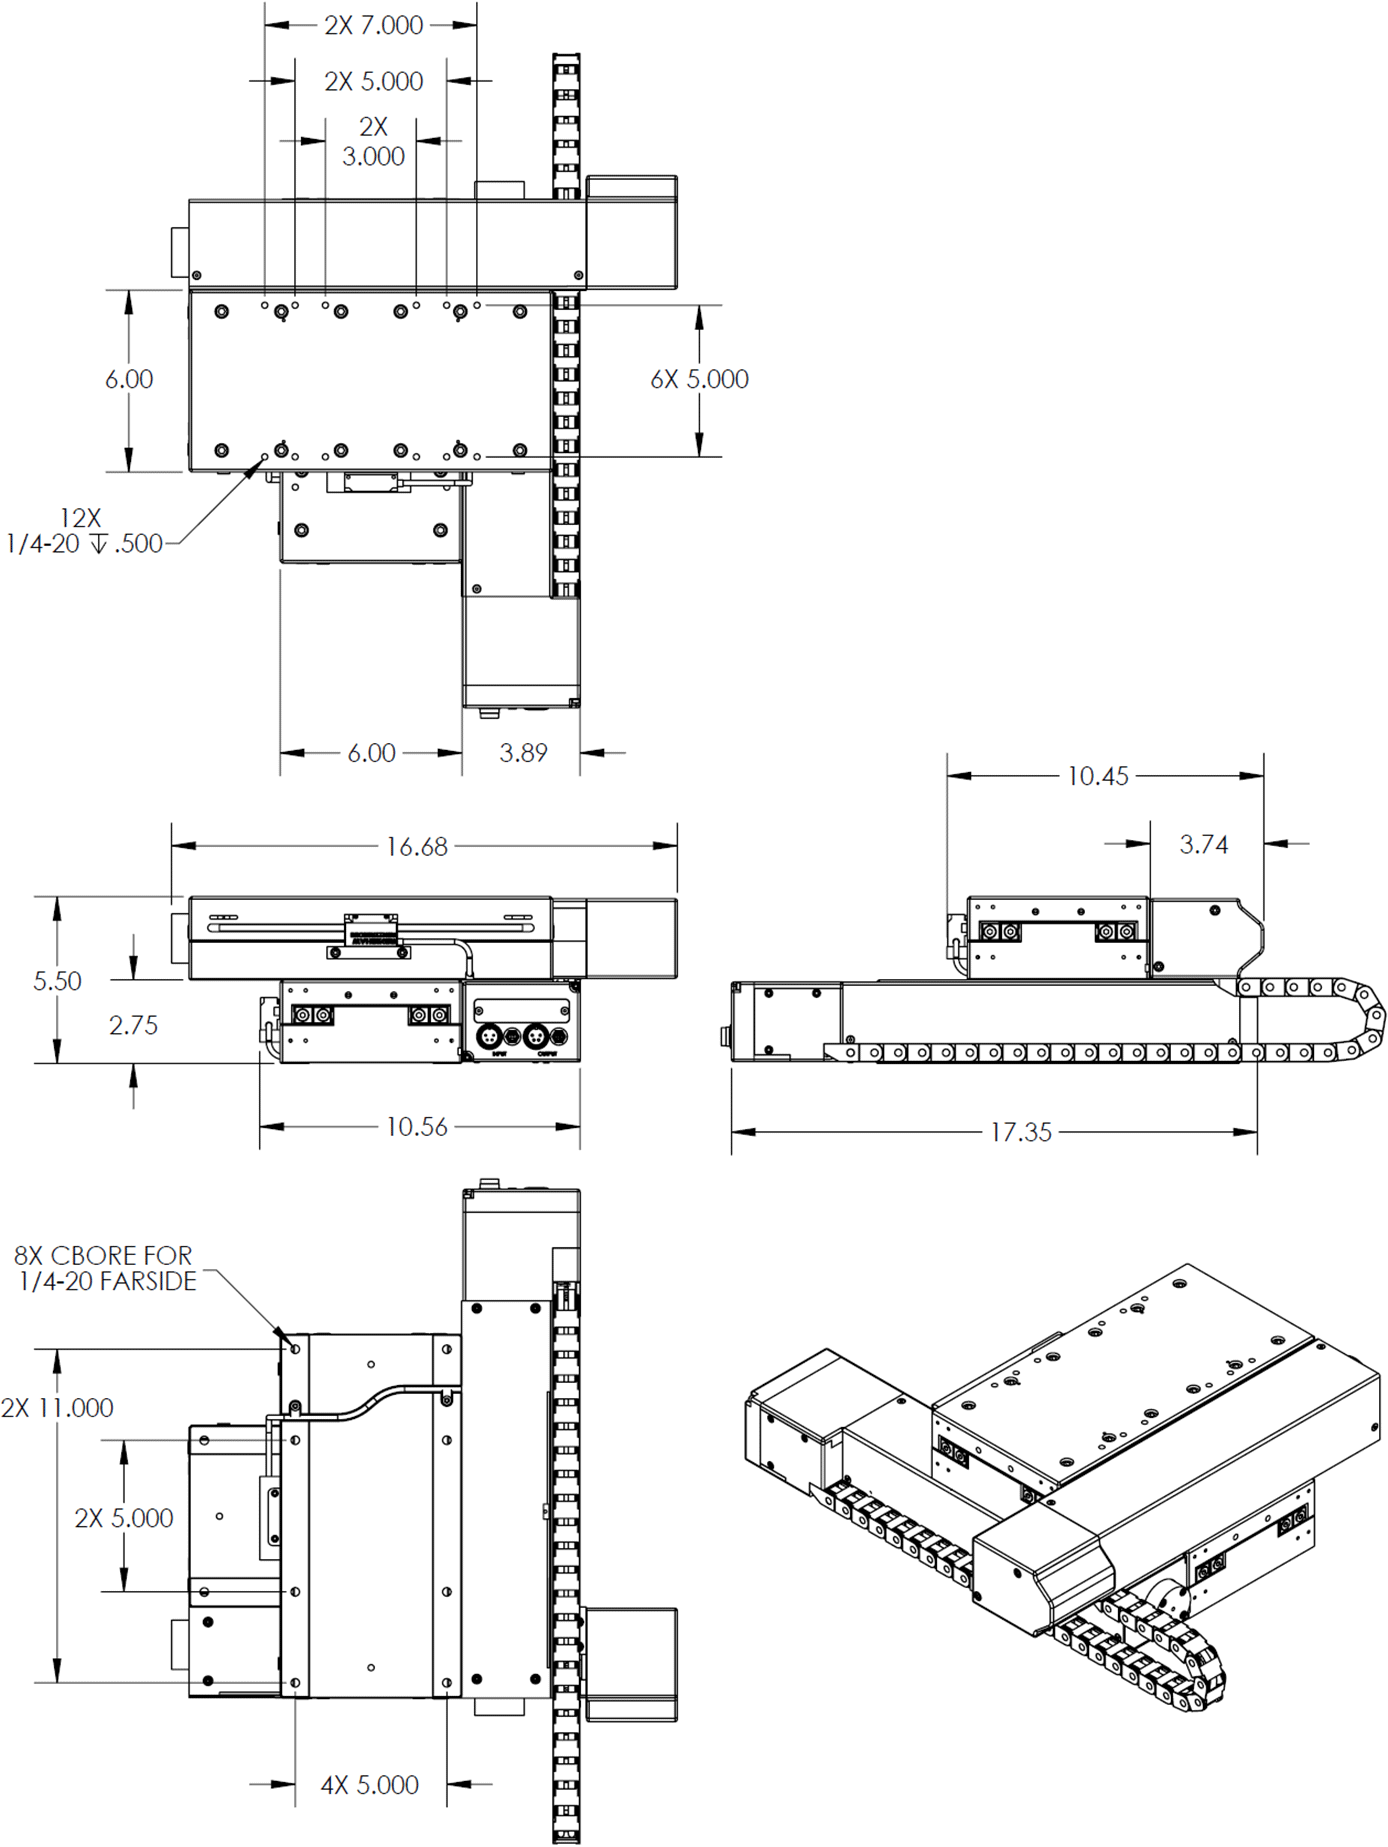 200mm x 200mm X-Y OEM Stage Dimension Drawings